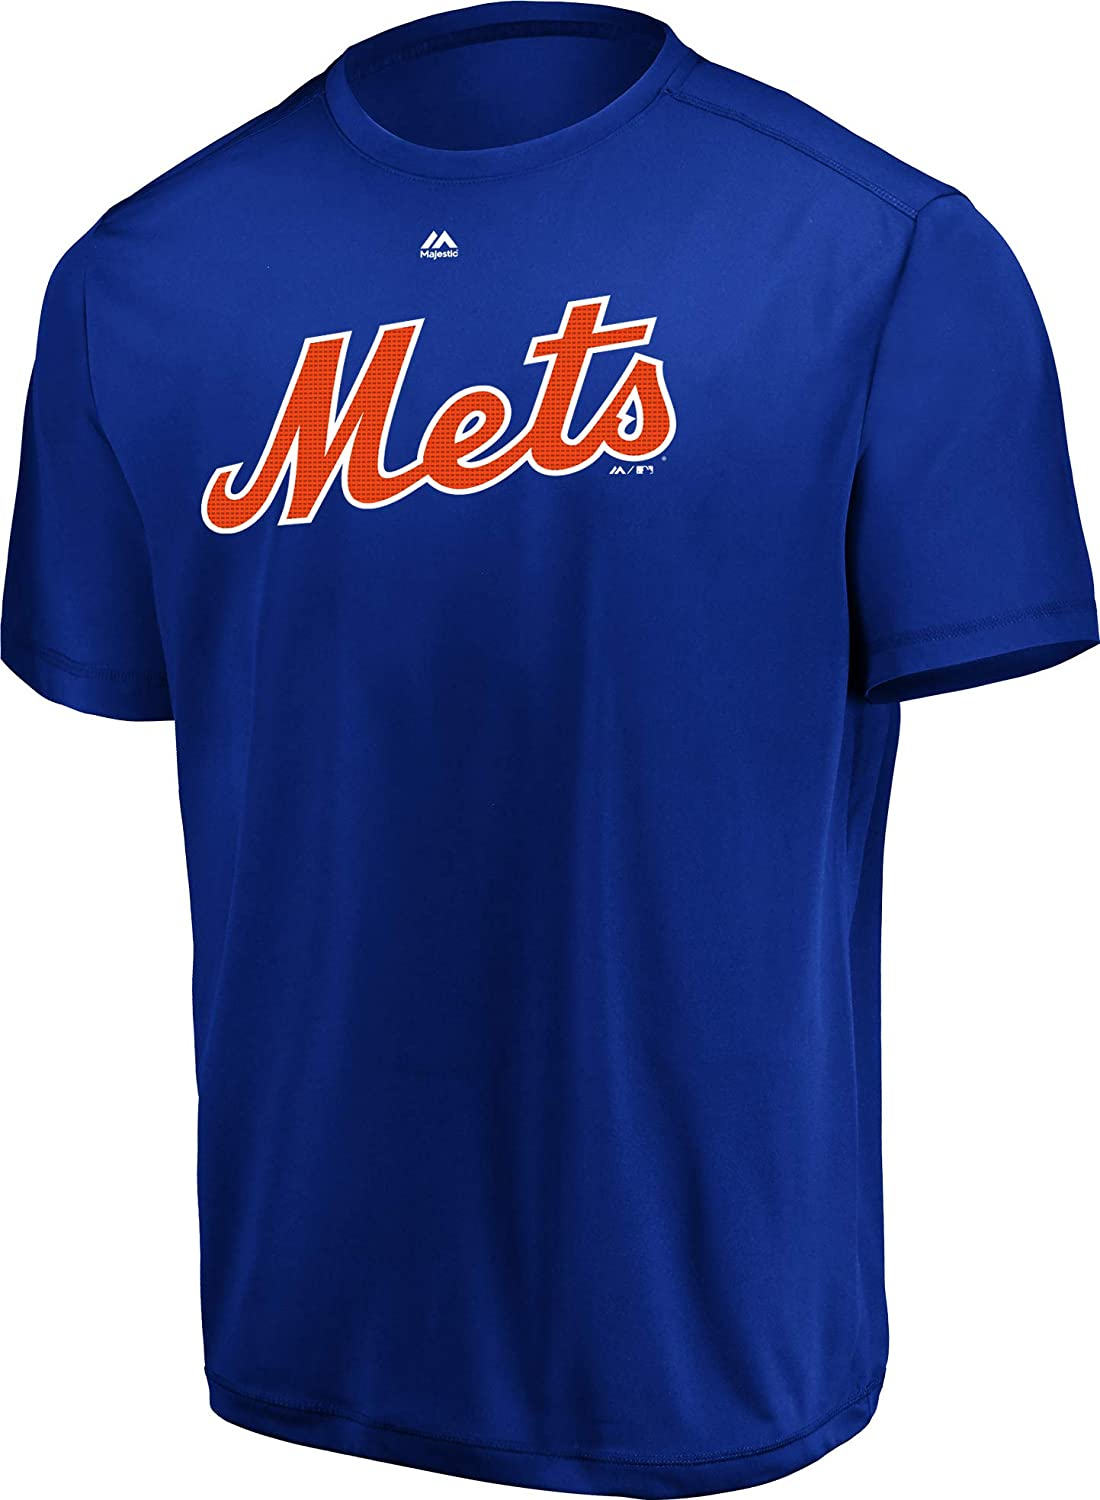 Majestic New York Mets Cool-Base Wicking Licensed Replica Jersey Tee (10 Youth/Adult Sizes)